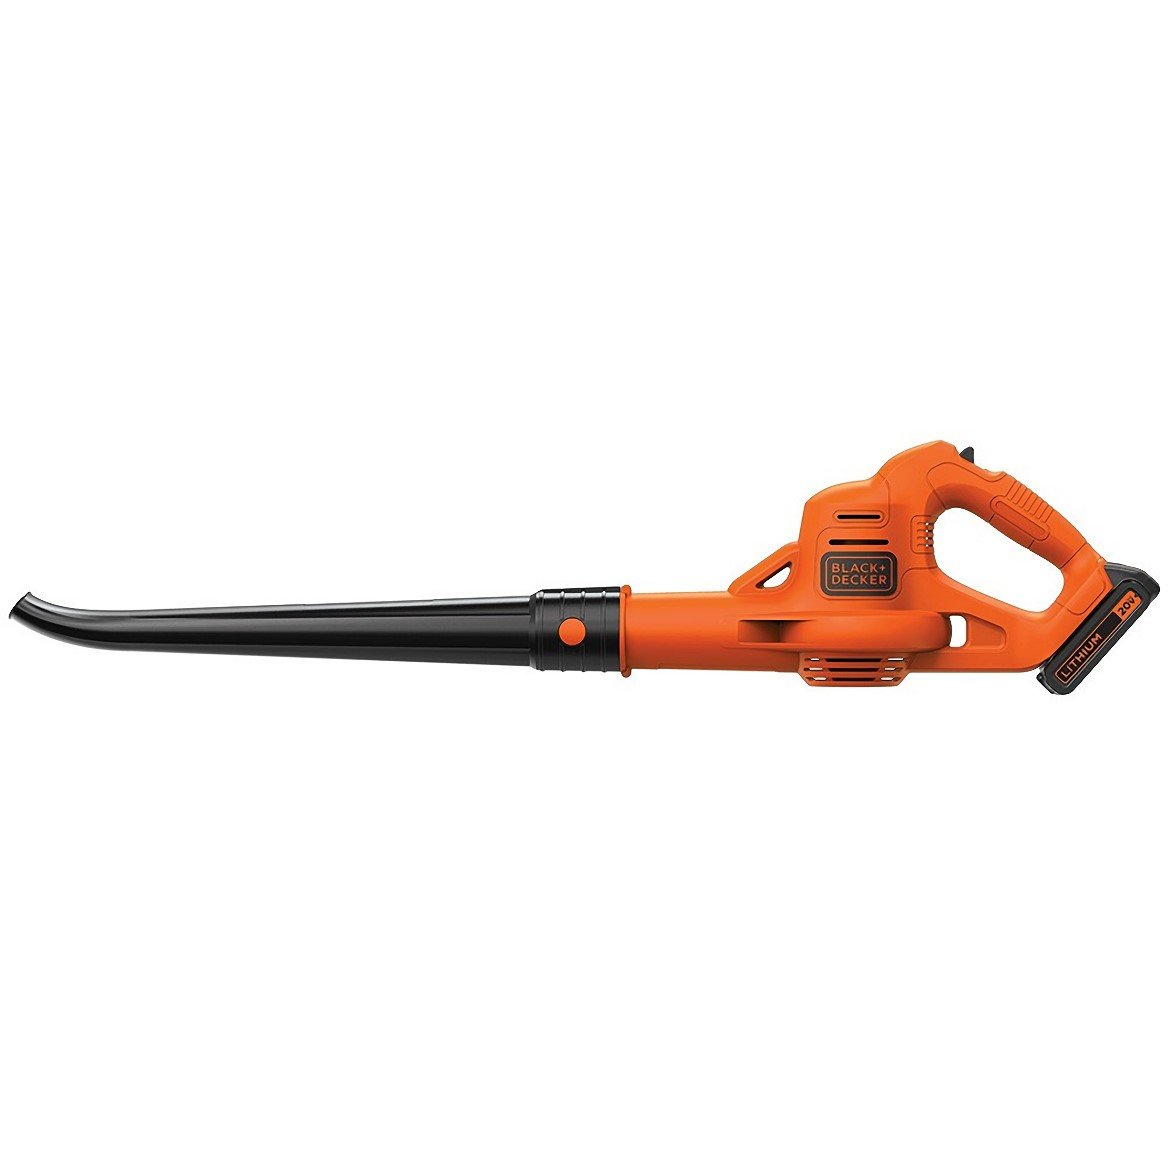 side view of the Black and Decker LSW221 Leaf Blower